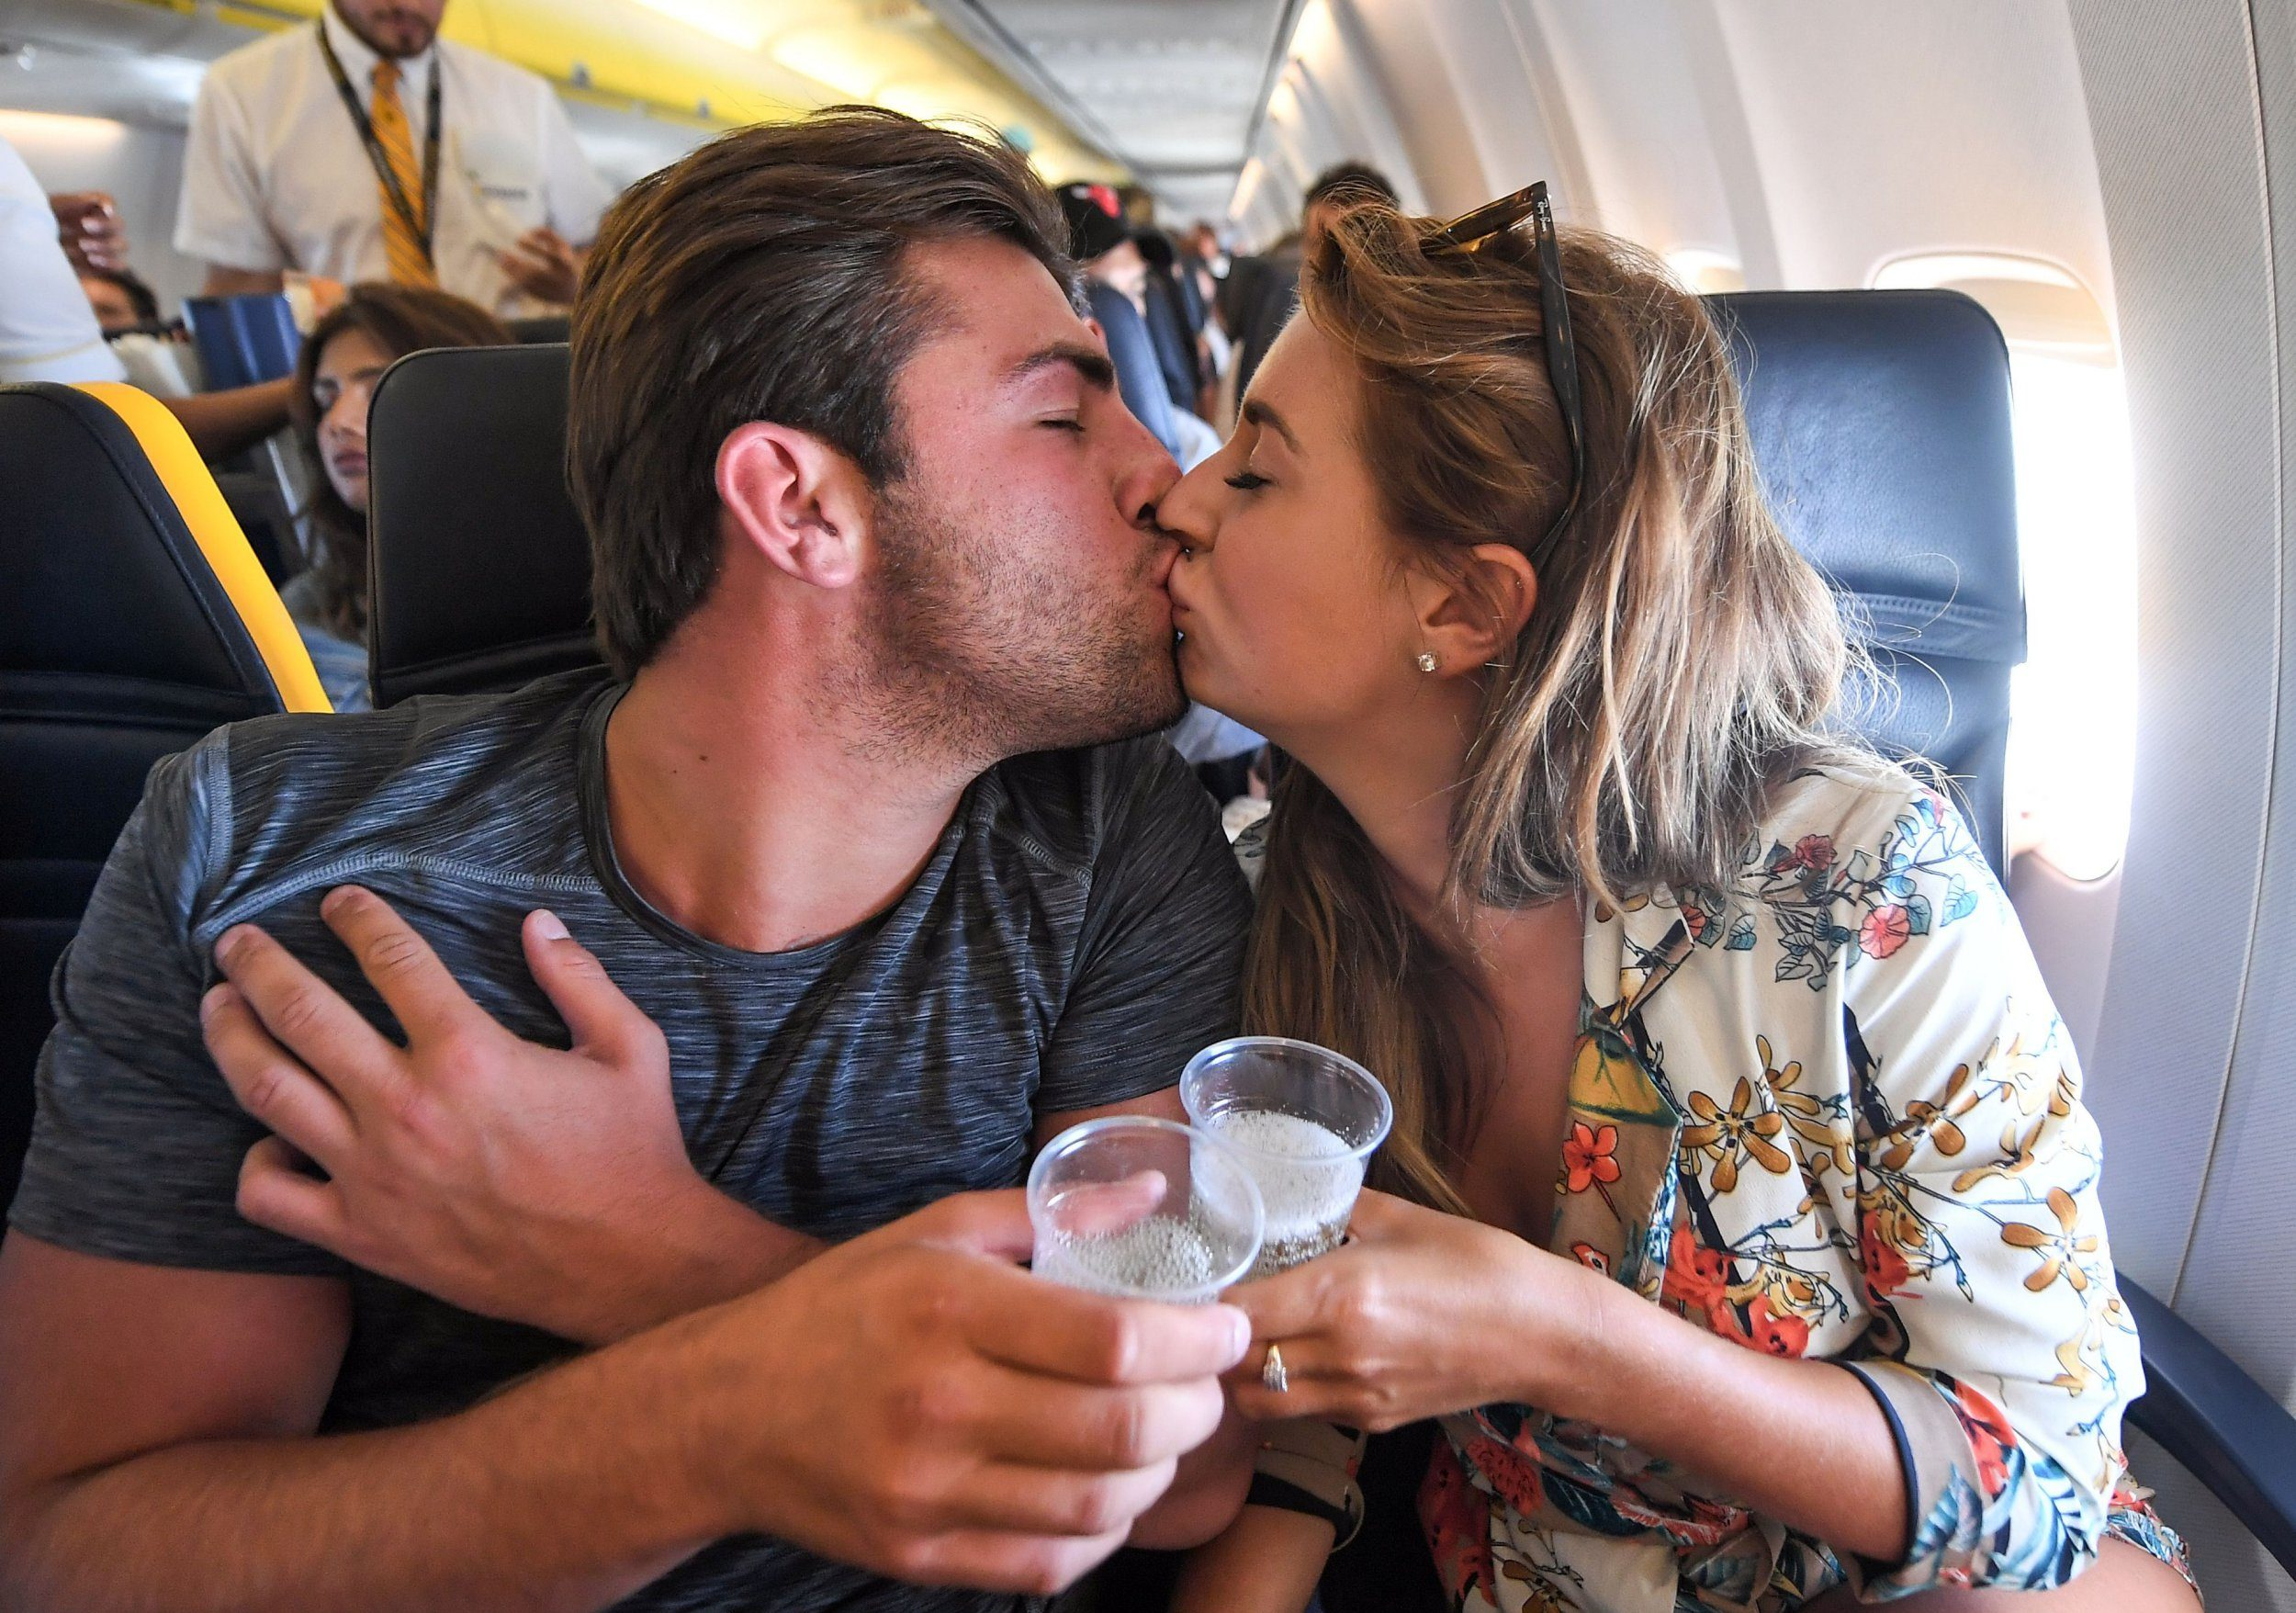 Editorial Use Only. No Merchandising. No Commercial Use Mandatory Credit: Photo by James Gourley/ITV/REX/Shutterstock (9774588p) Dani Dyer and Jack Fincham with champagne on the flight from Palma de Mallorca to London 'Love Island' TV Show, Series 4, heading home, Majorca, Spain - 31 Jul 2018